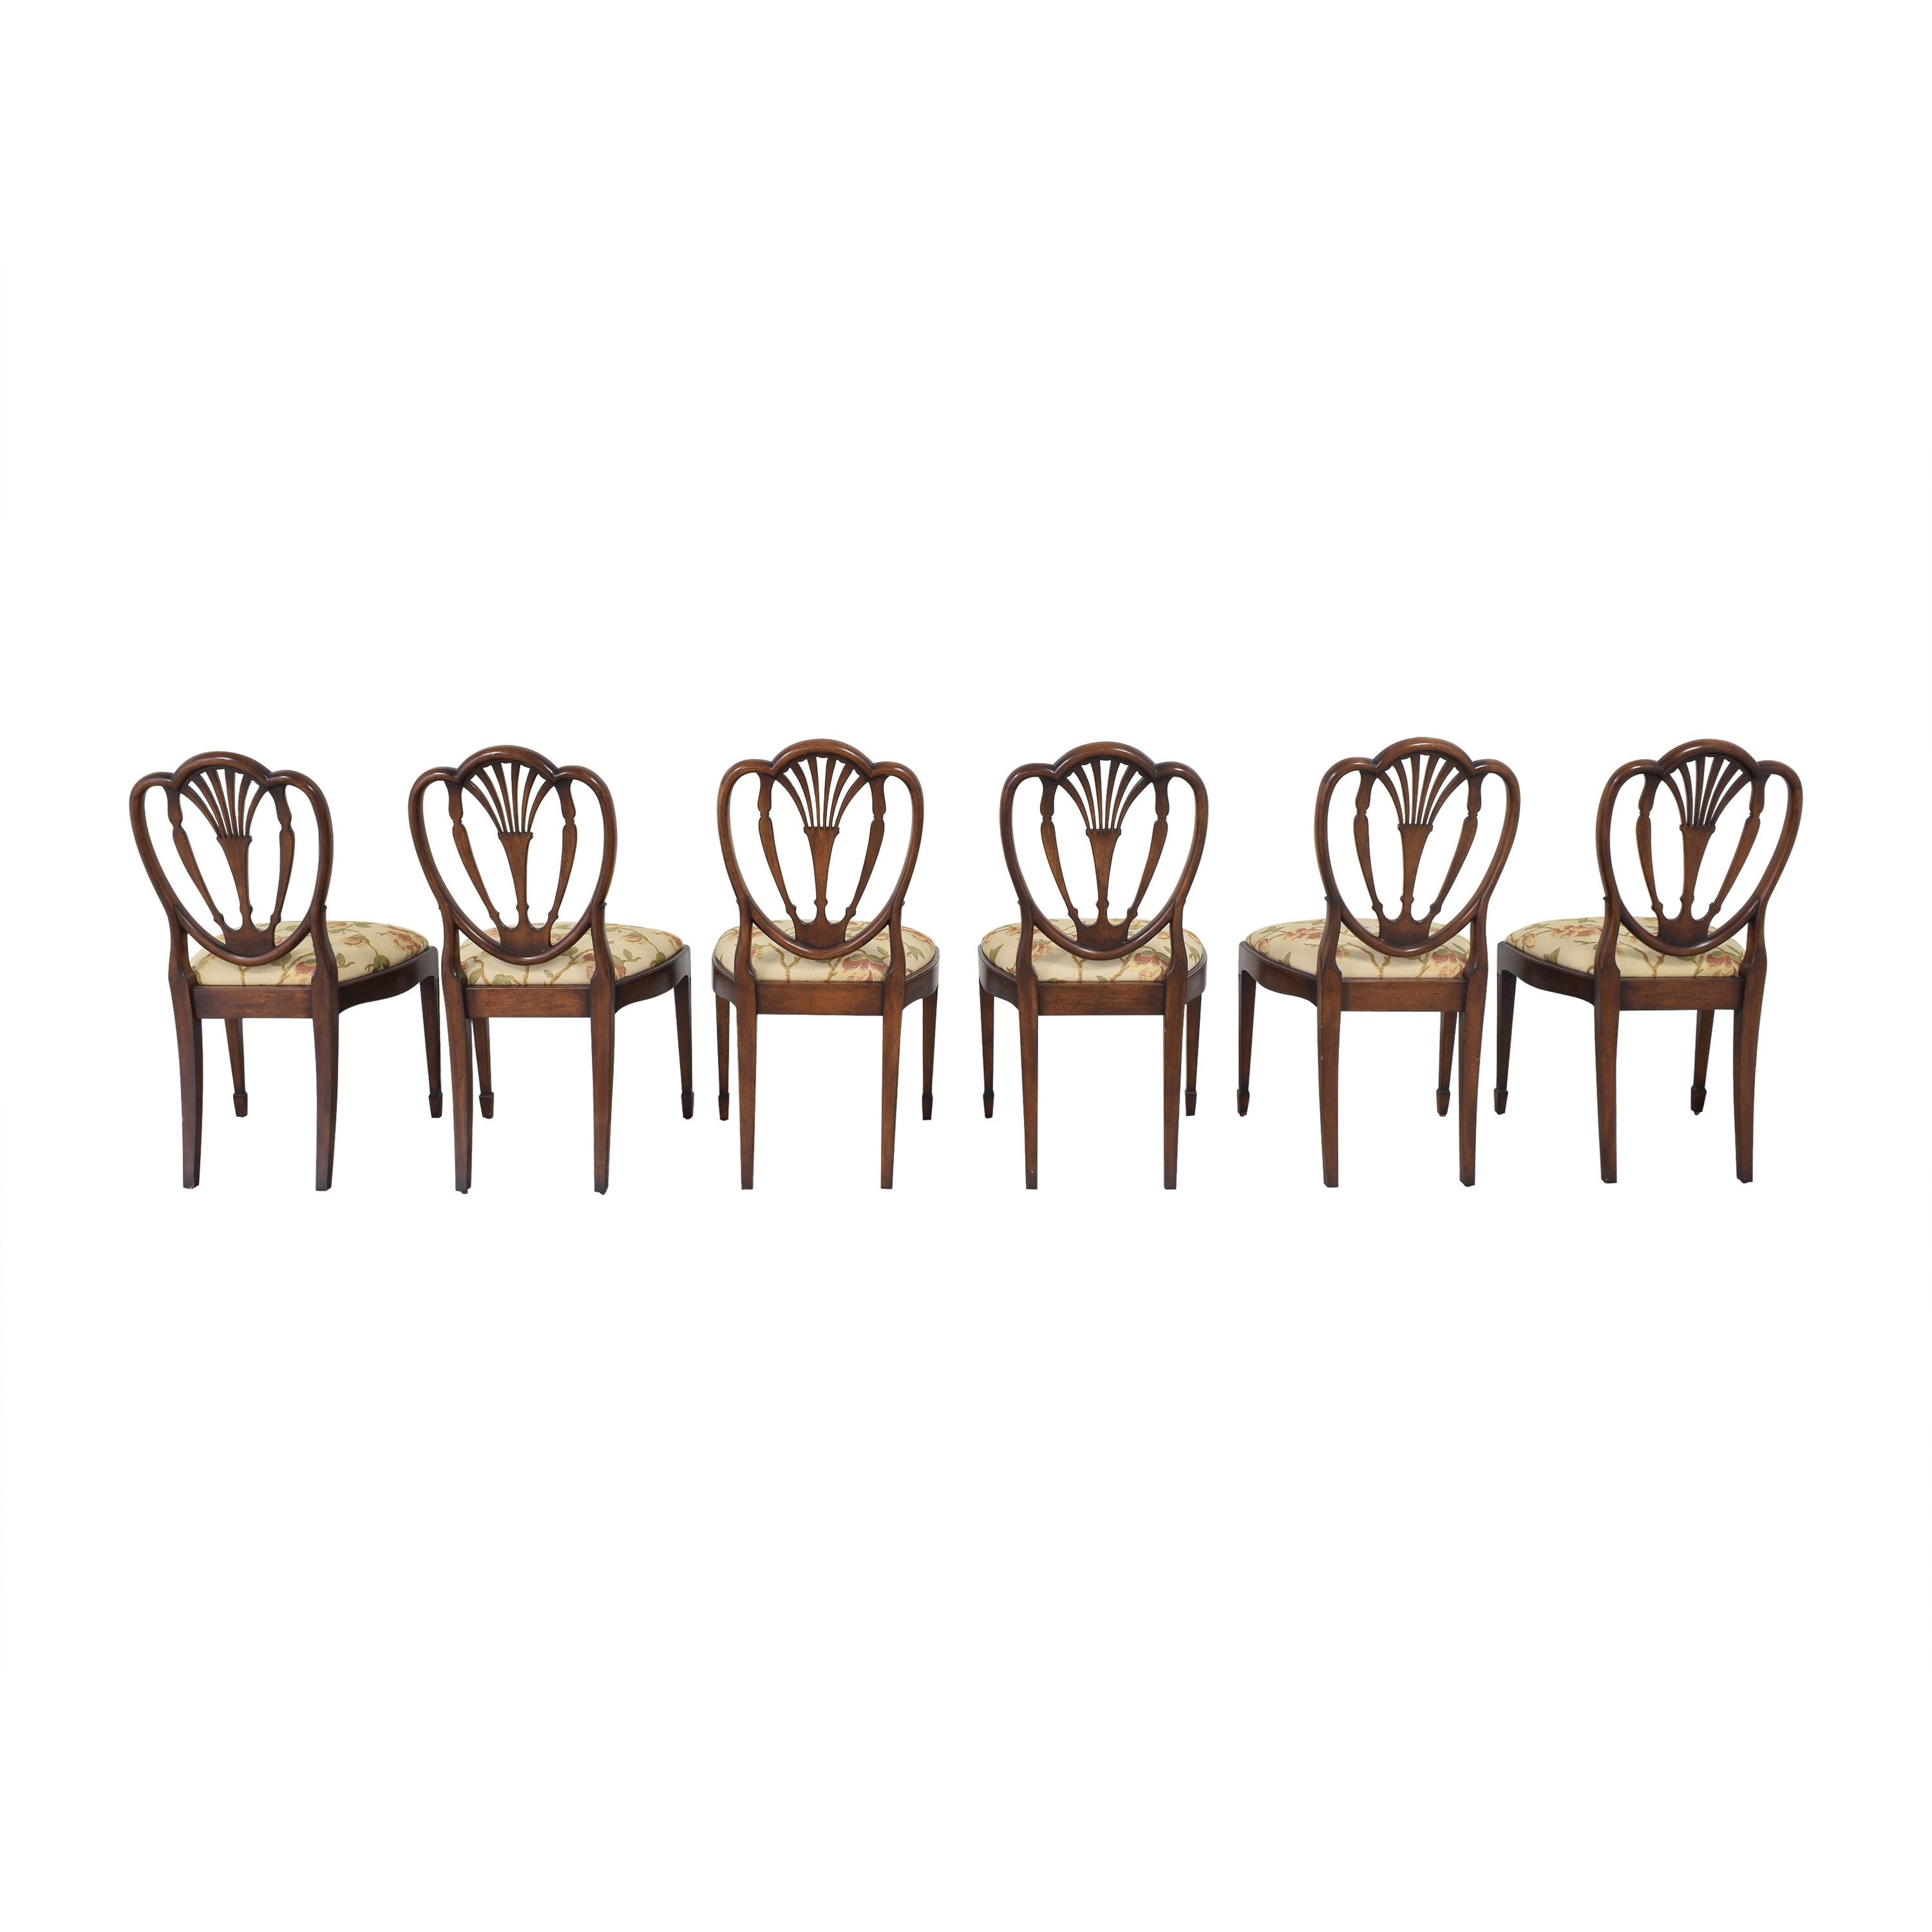 Ardley Hall Ardley Hall Dining Chairs Dining Chairs